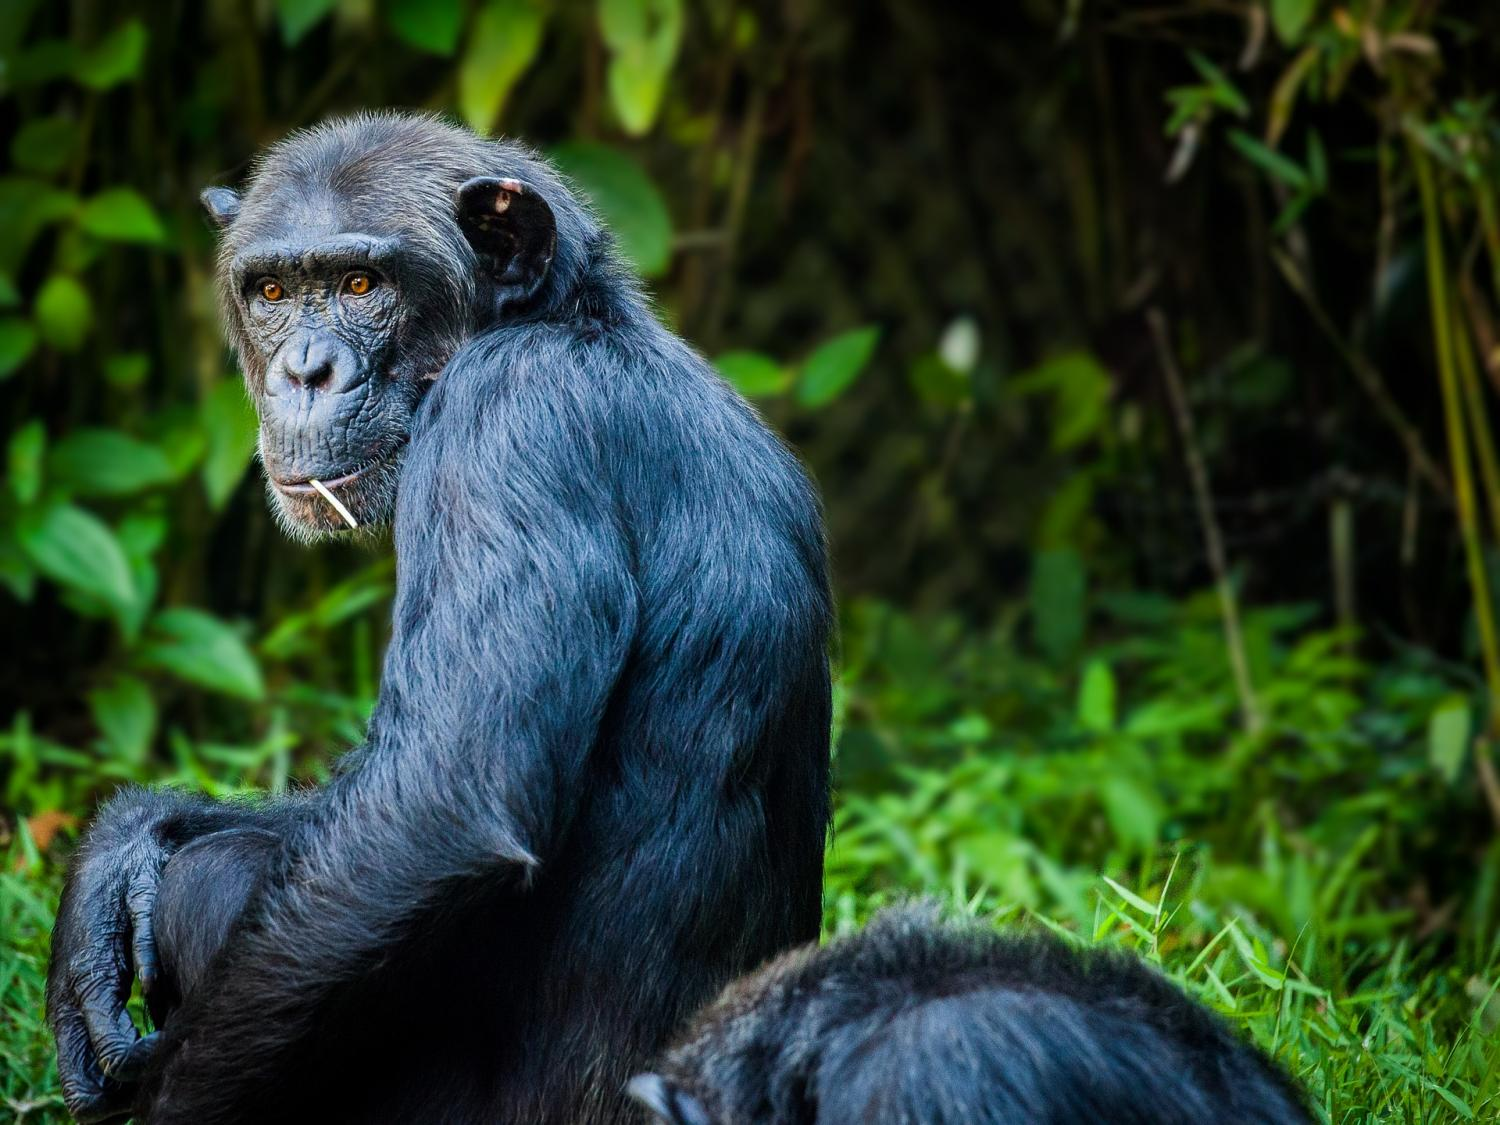 apes abilities misunderstood by decades of poor science